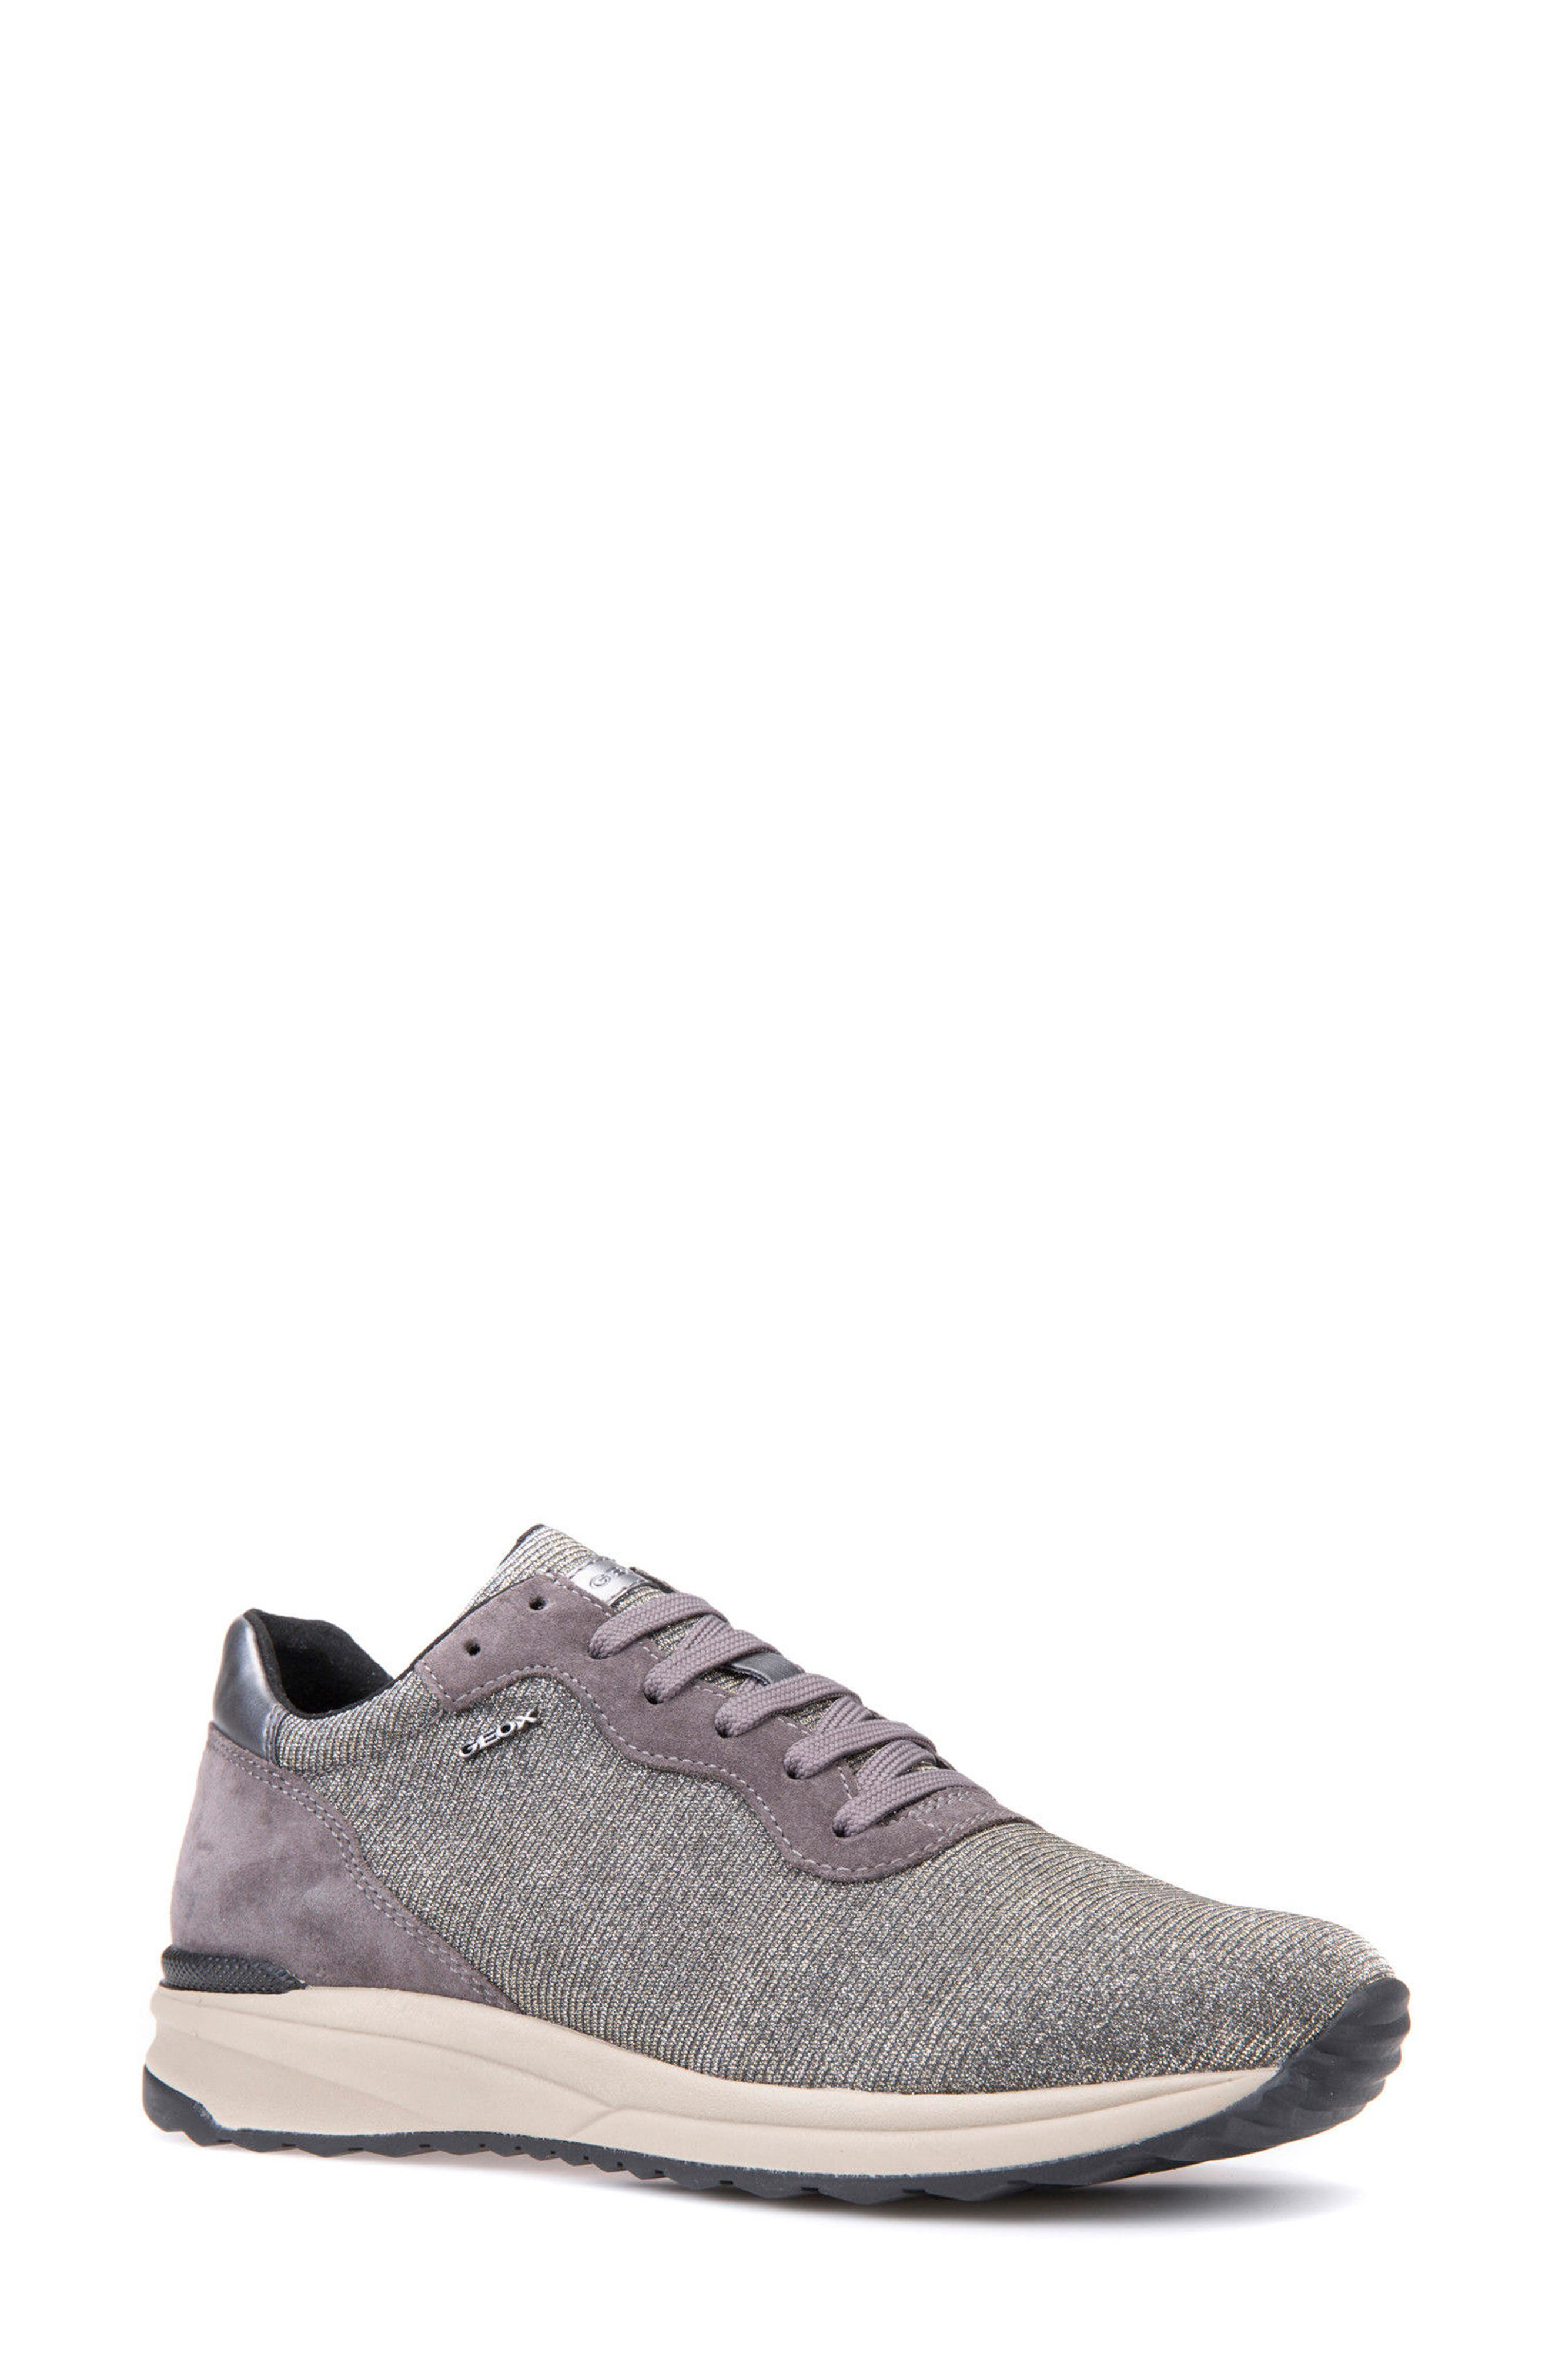 Alternate Image 1 Selected - Geox Airell Sneaker (Women)